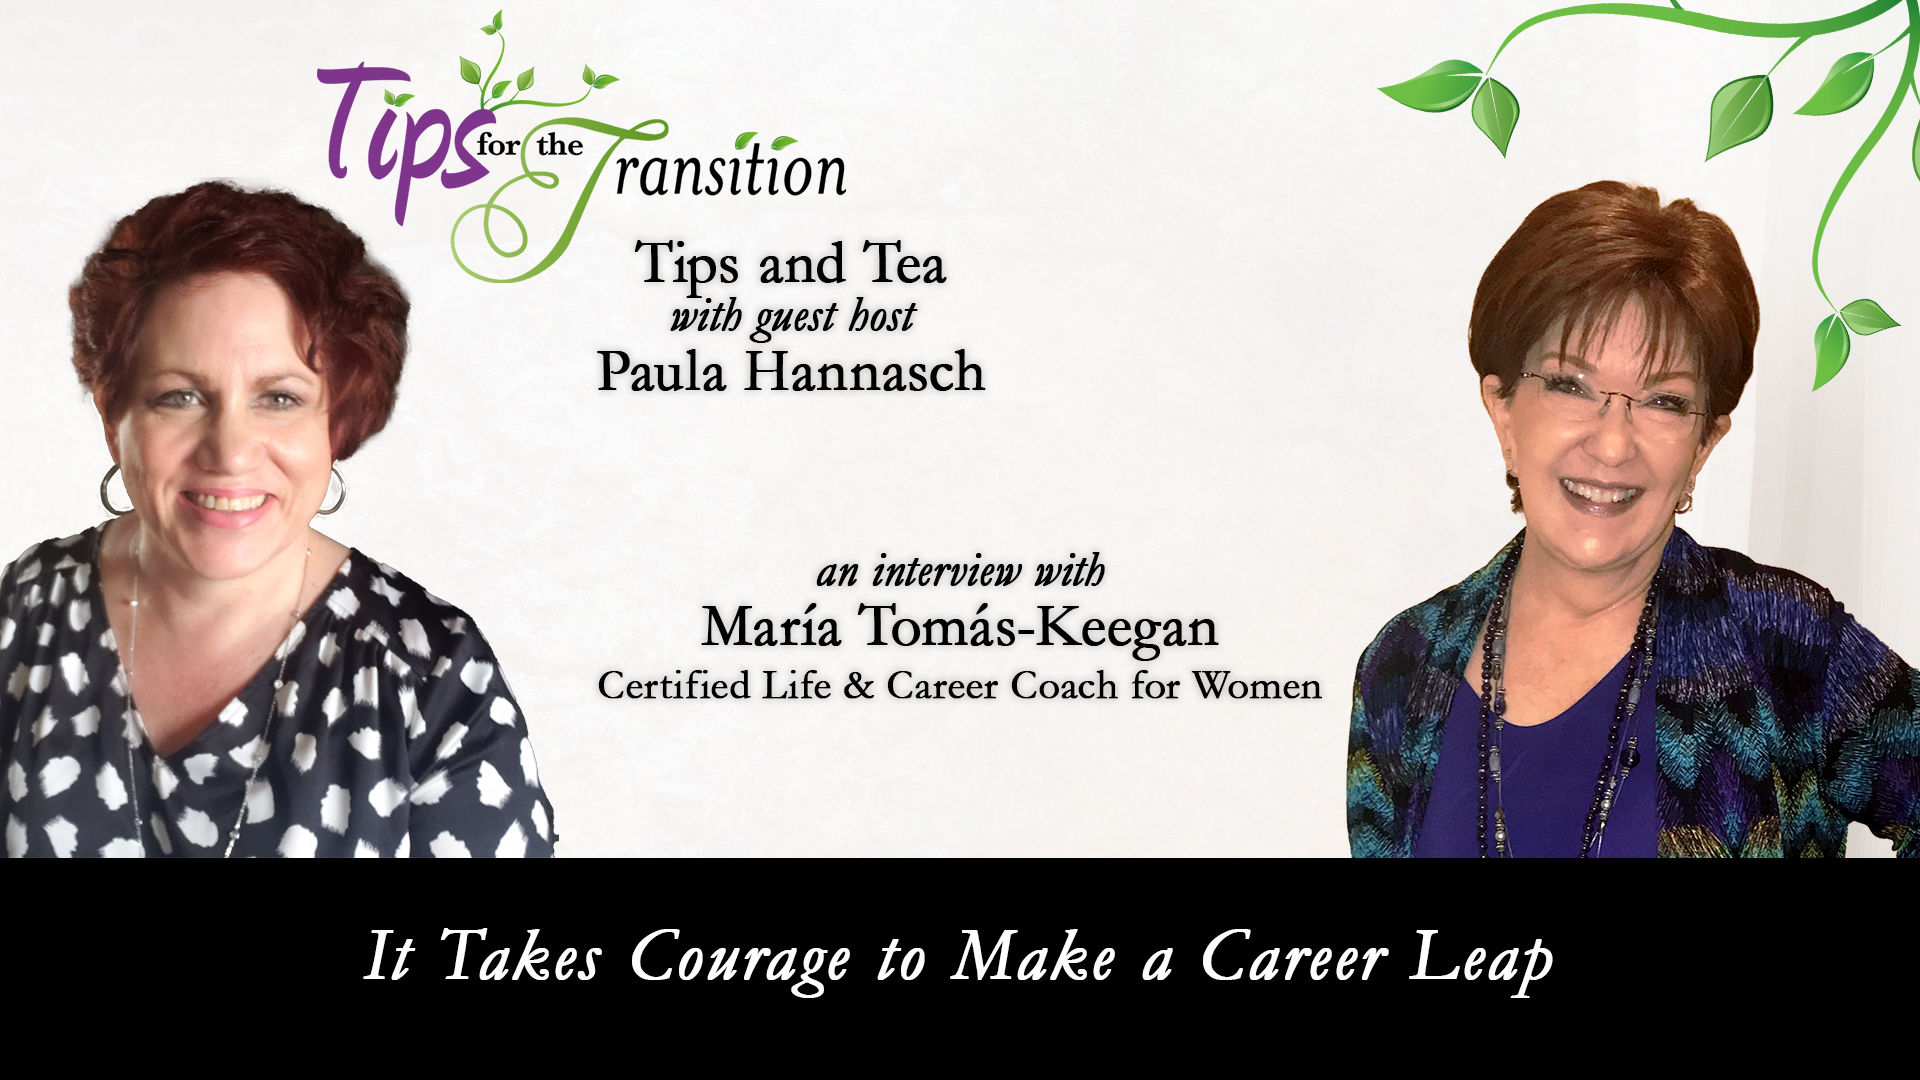 It Takes Courage to Make a Career Leap